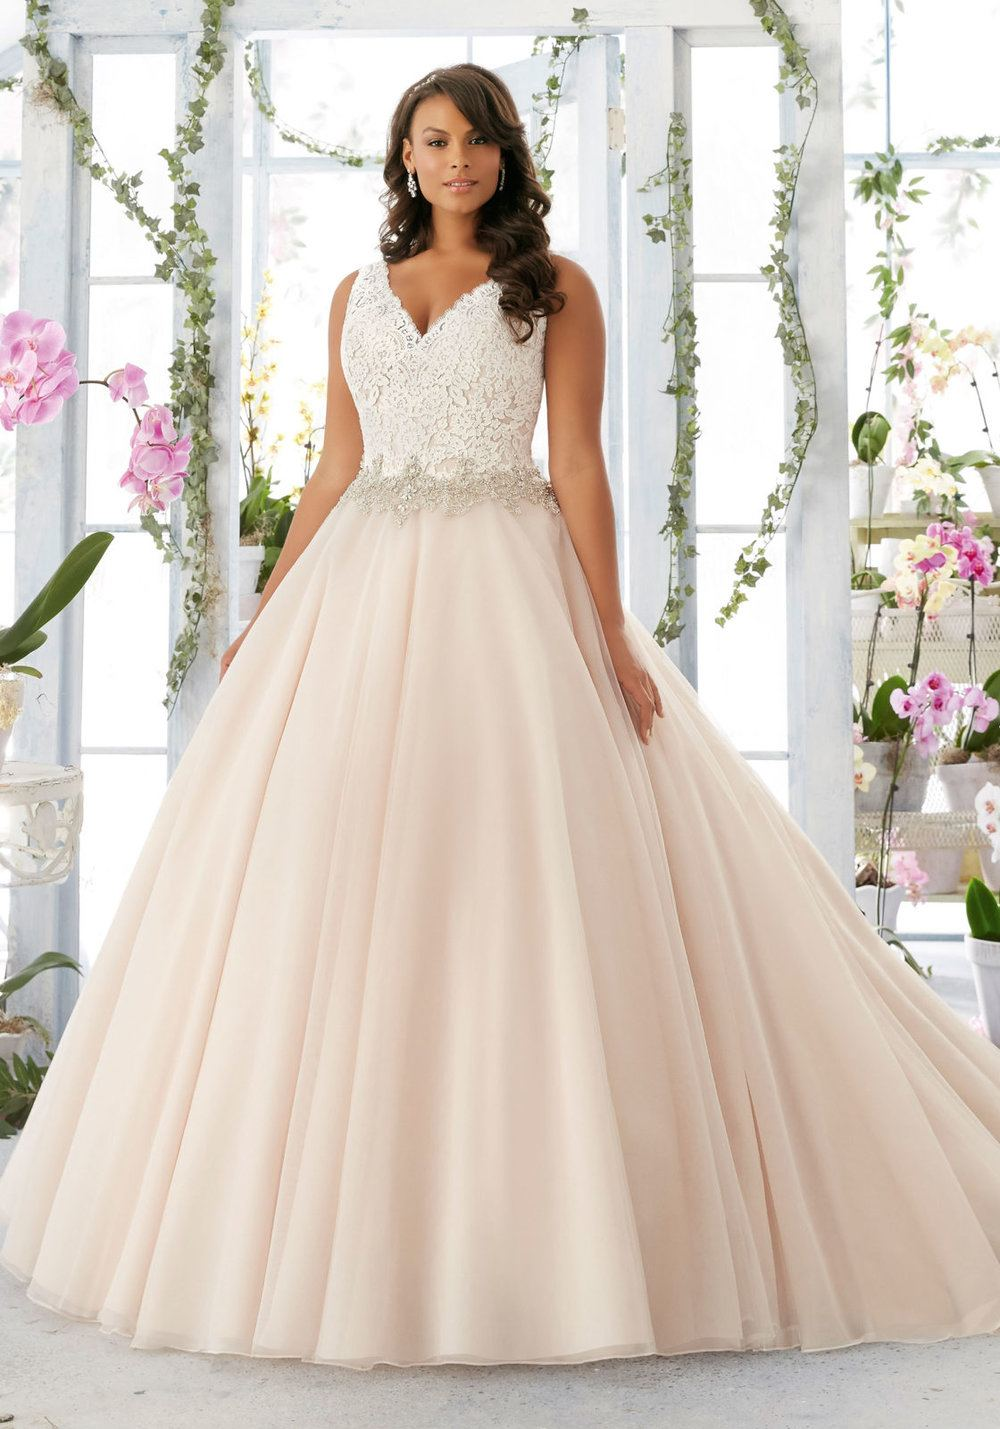 Whether you are looking for something fitted and sexy or a romantic  ballgown, we have something for every bride, regardless of her size